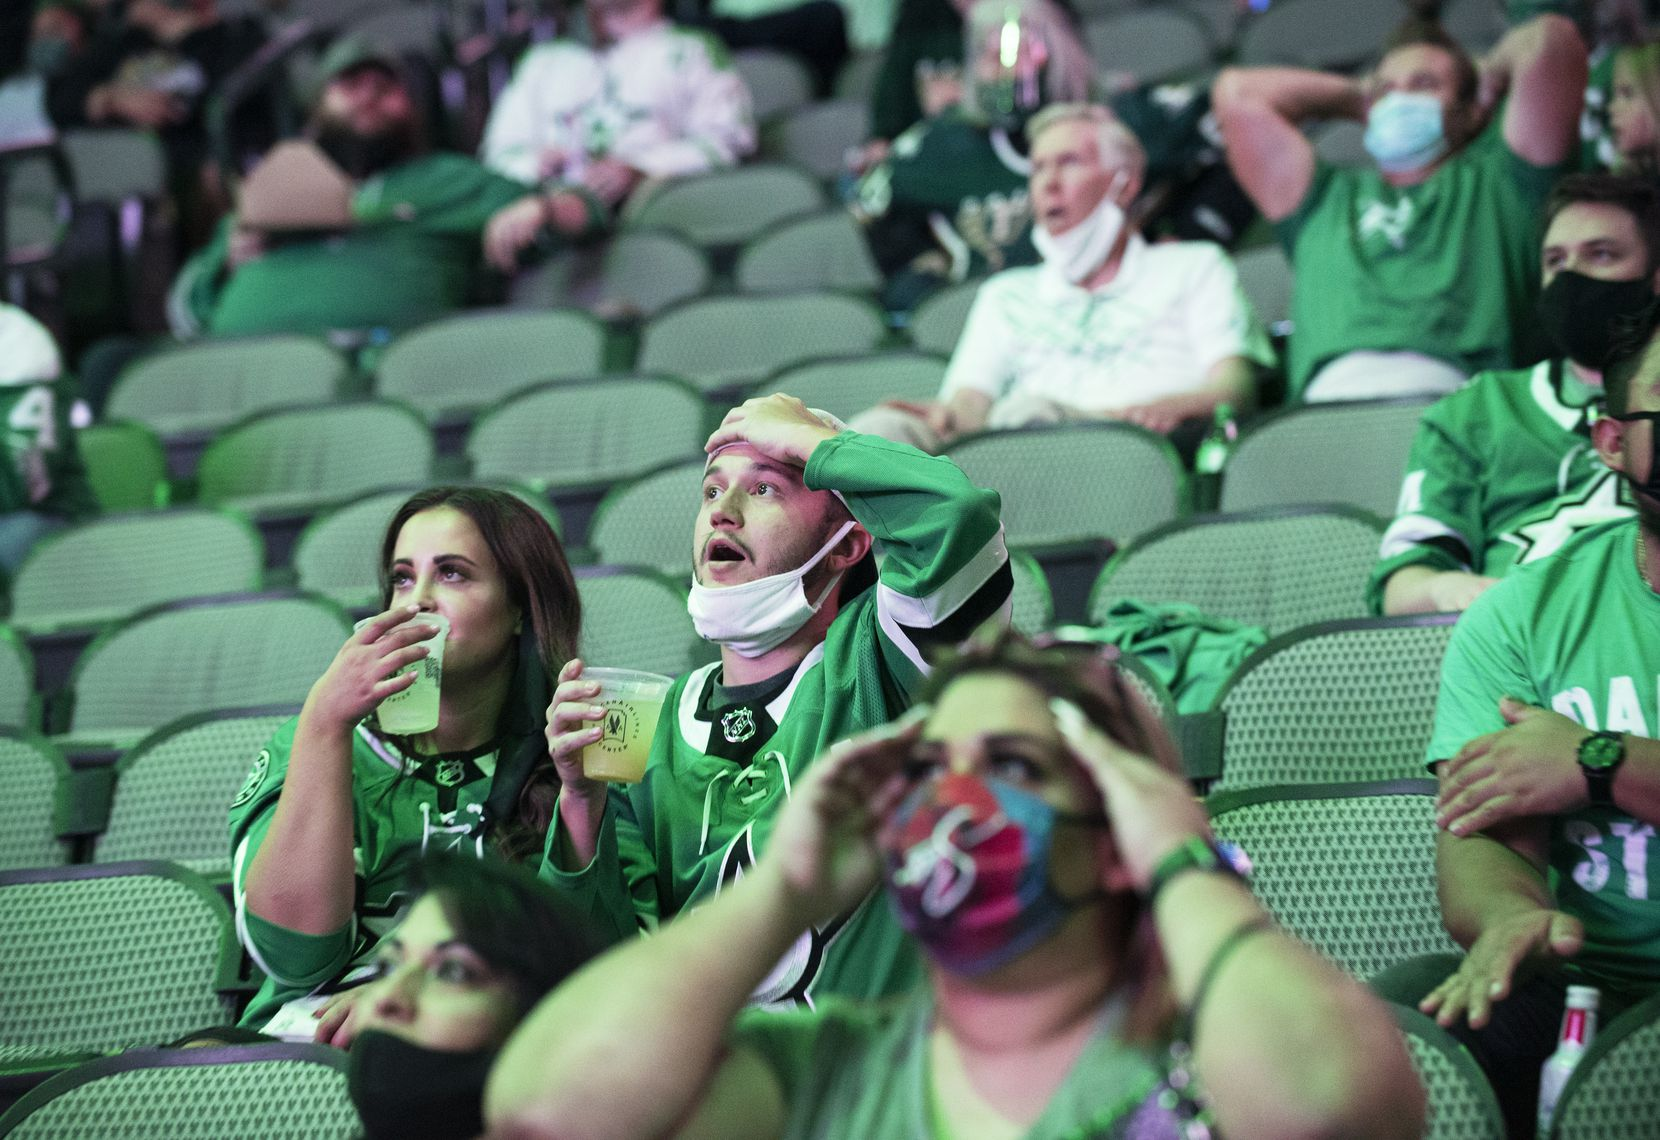 Fans react with disbelief while watching the Tampa Bay Lightning versus the Dallas Stars during a watch party at the American Airlines Center for game 1 of the Stanley Cup Final, Saturday, on Sept. 19, 2020. Ben Torres/Special Contributor